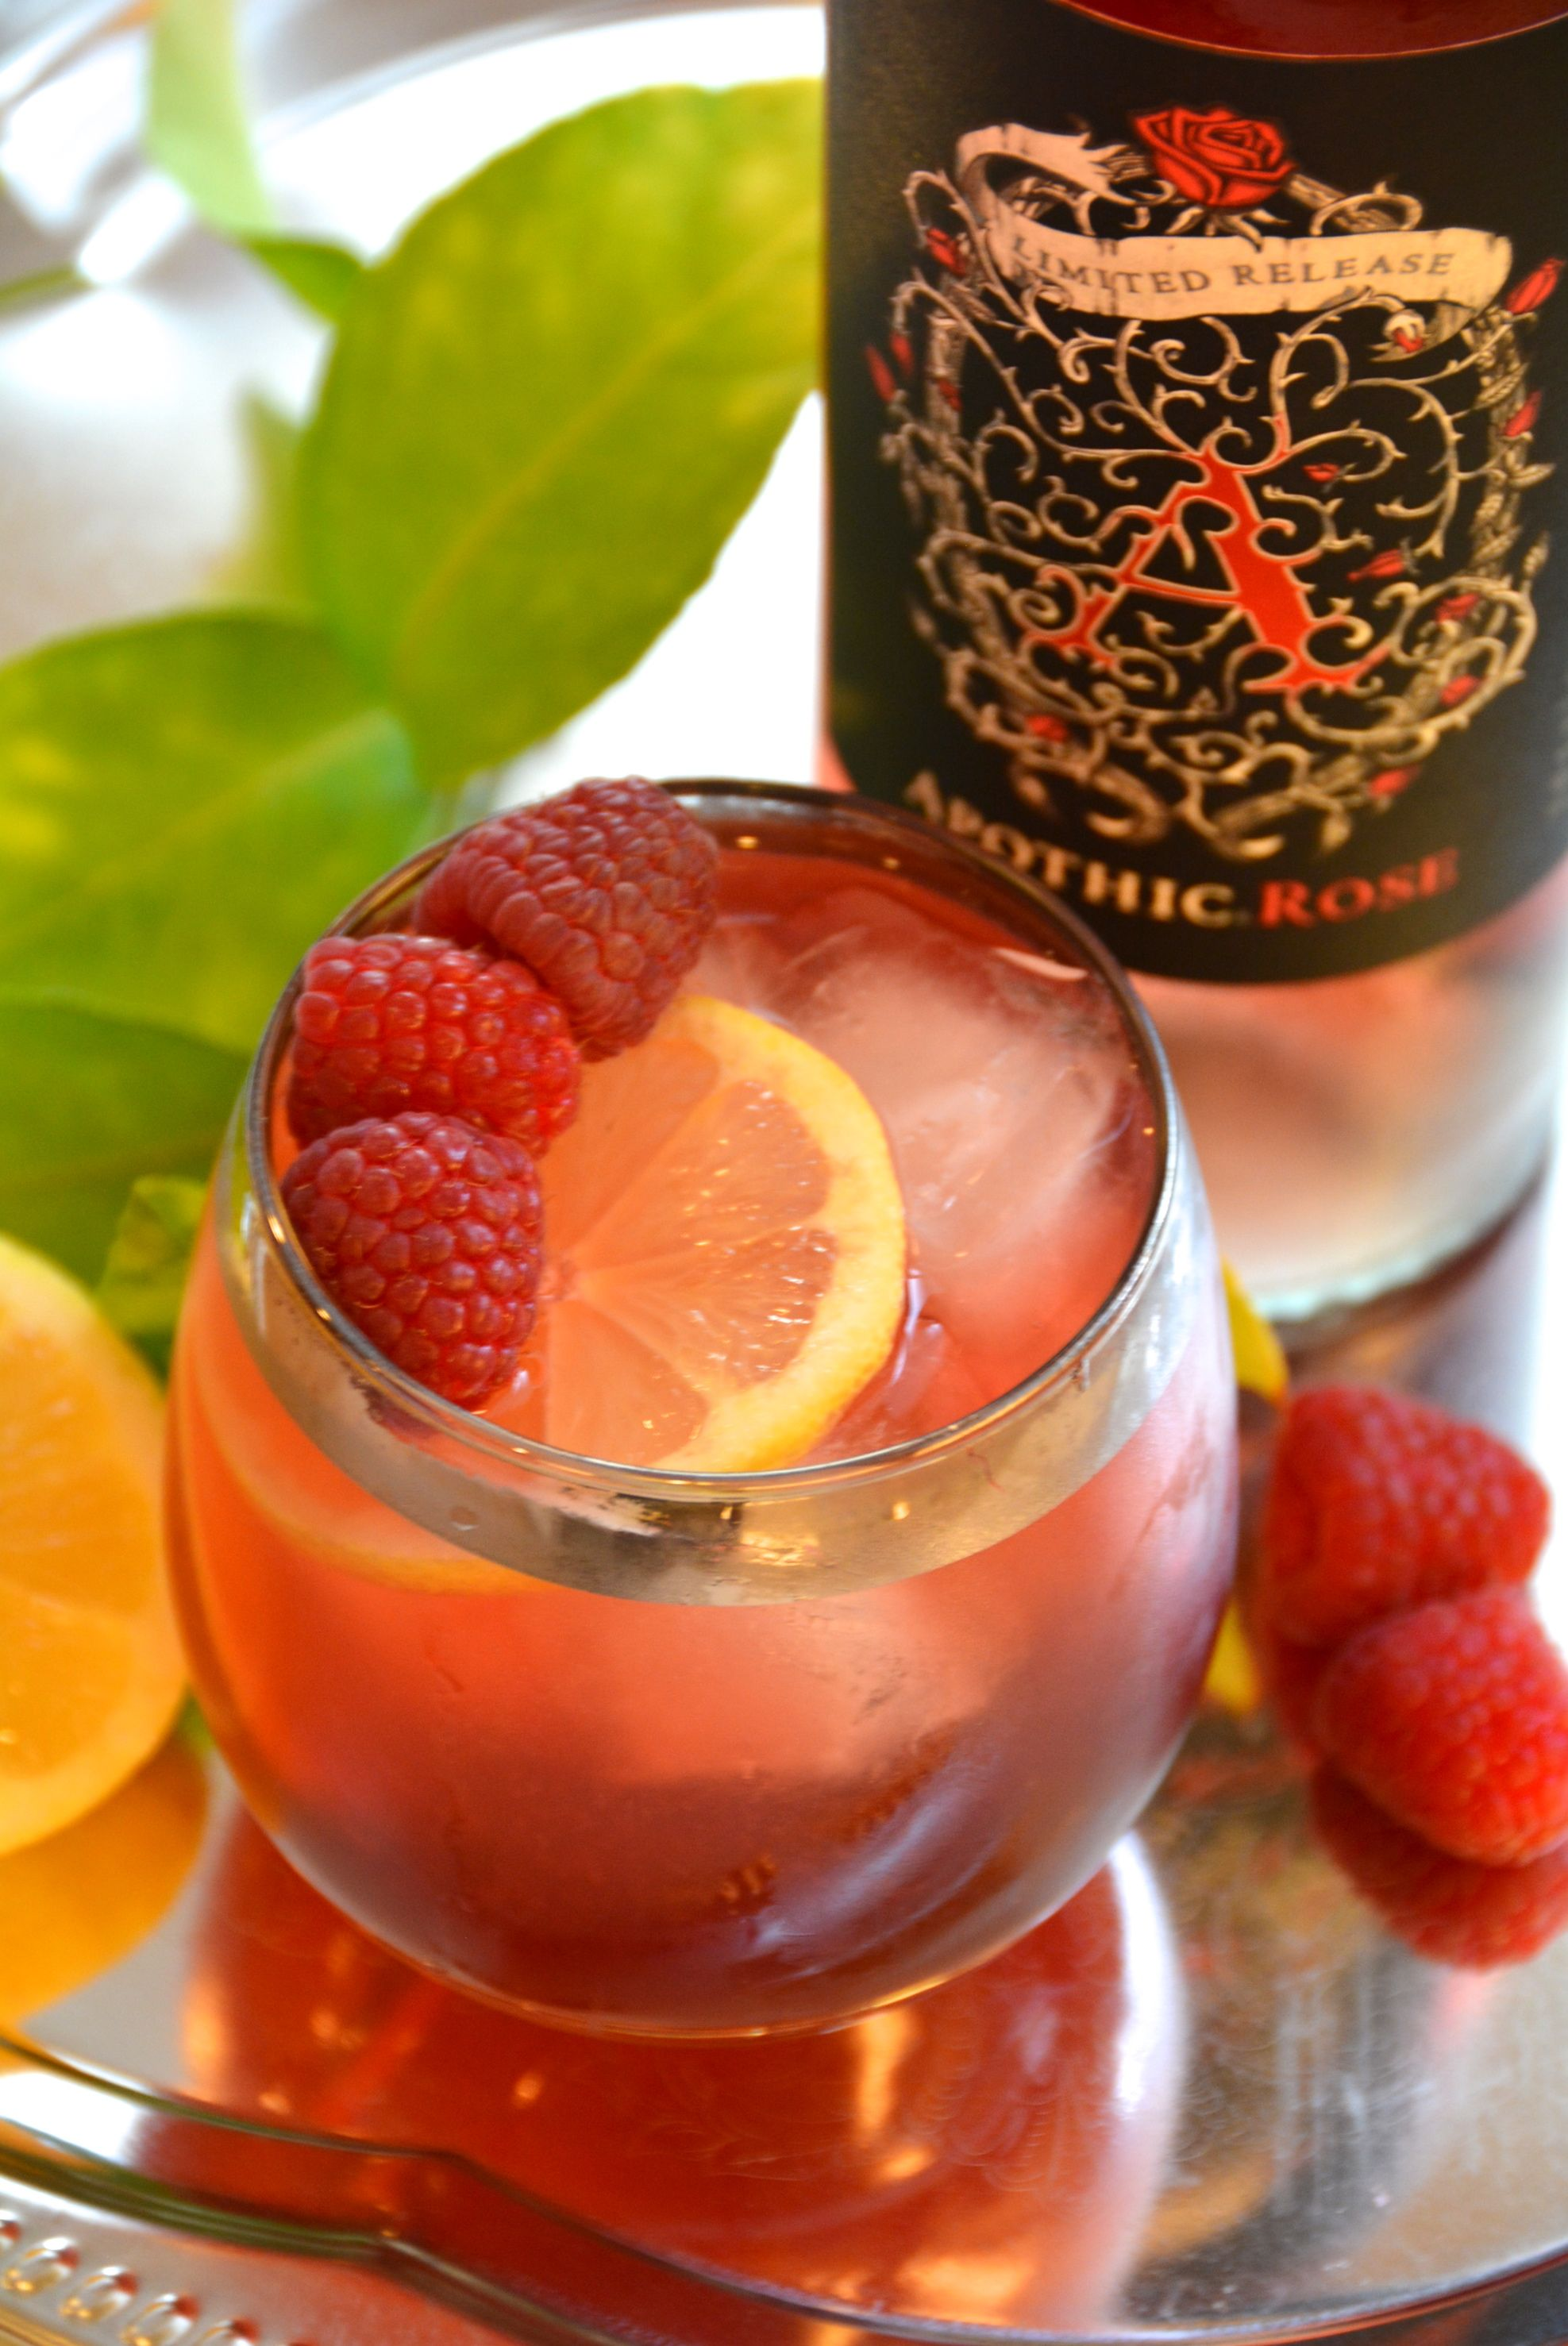 The perfect summer wine apothic rose apothic rose sangria recipe food forumfinder Images